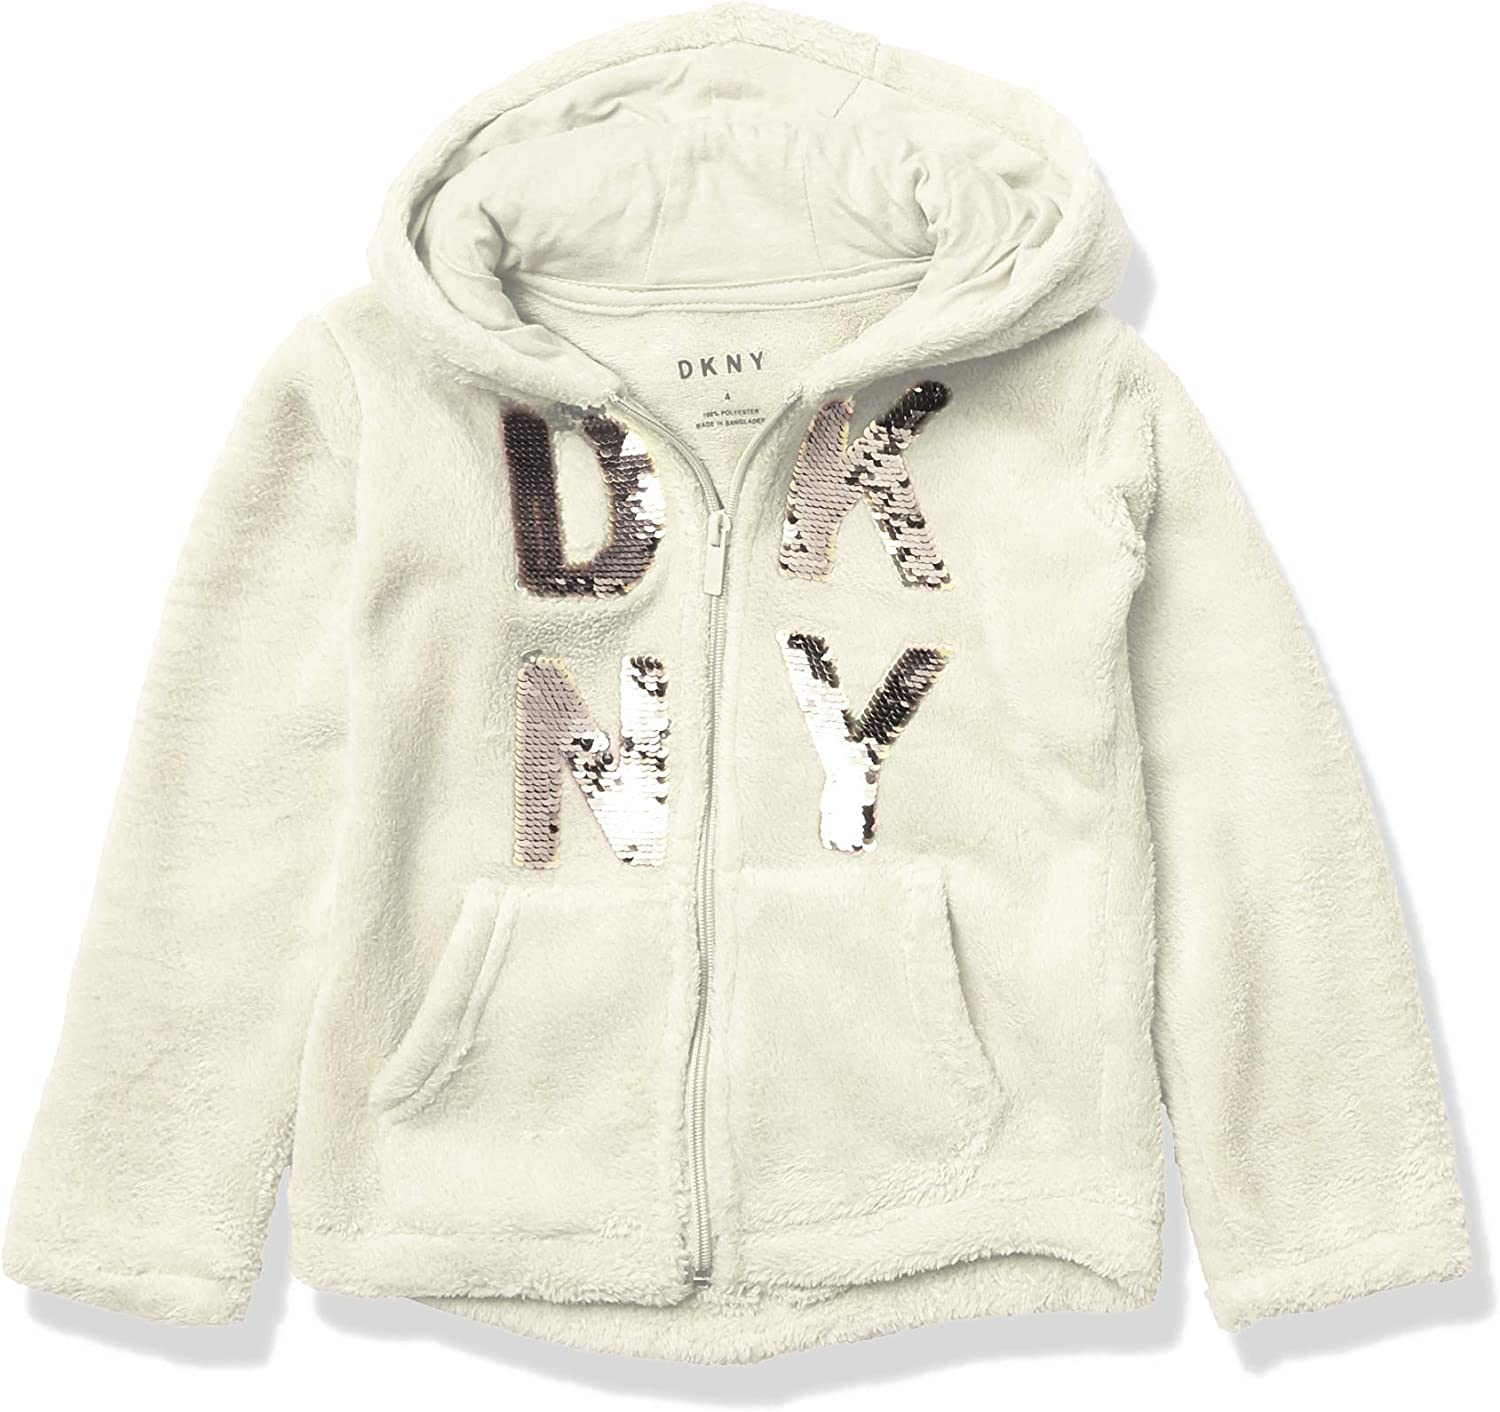 DKNY In stock Girls' Hoodie SEAL limited product